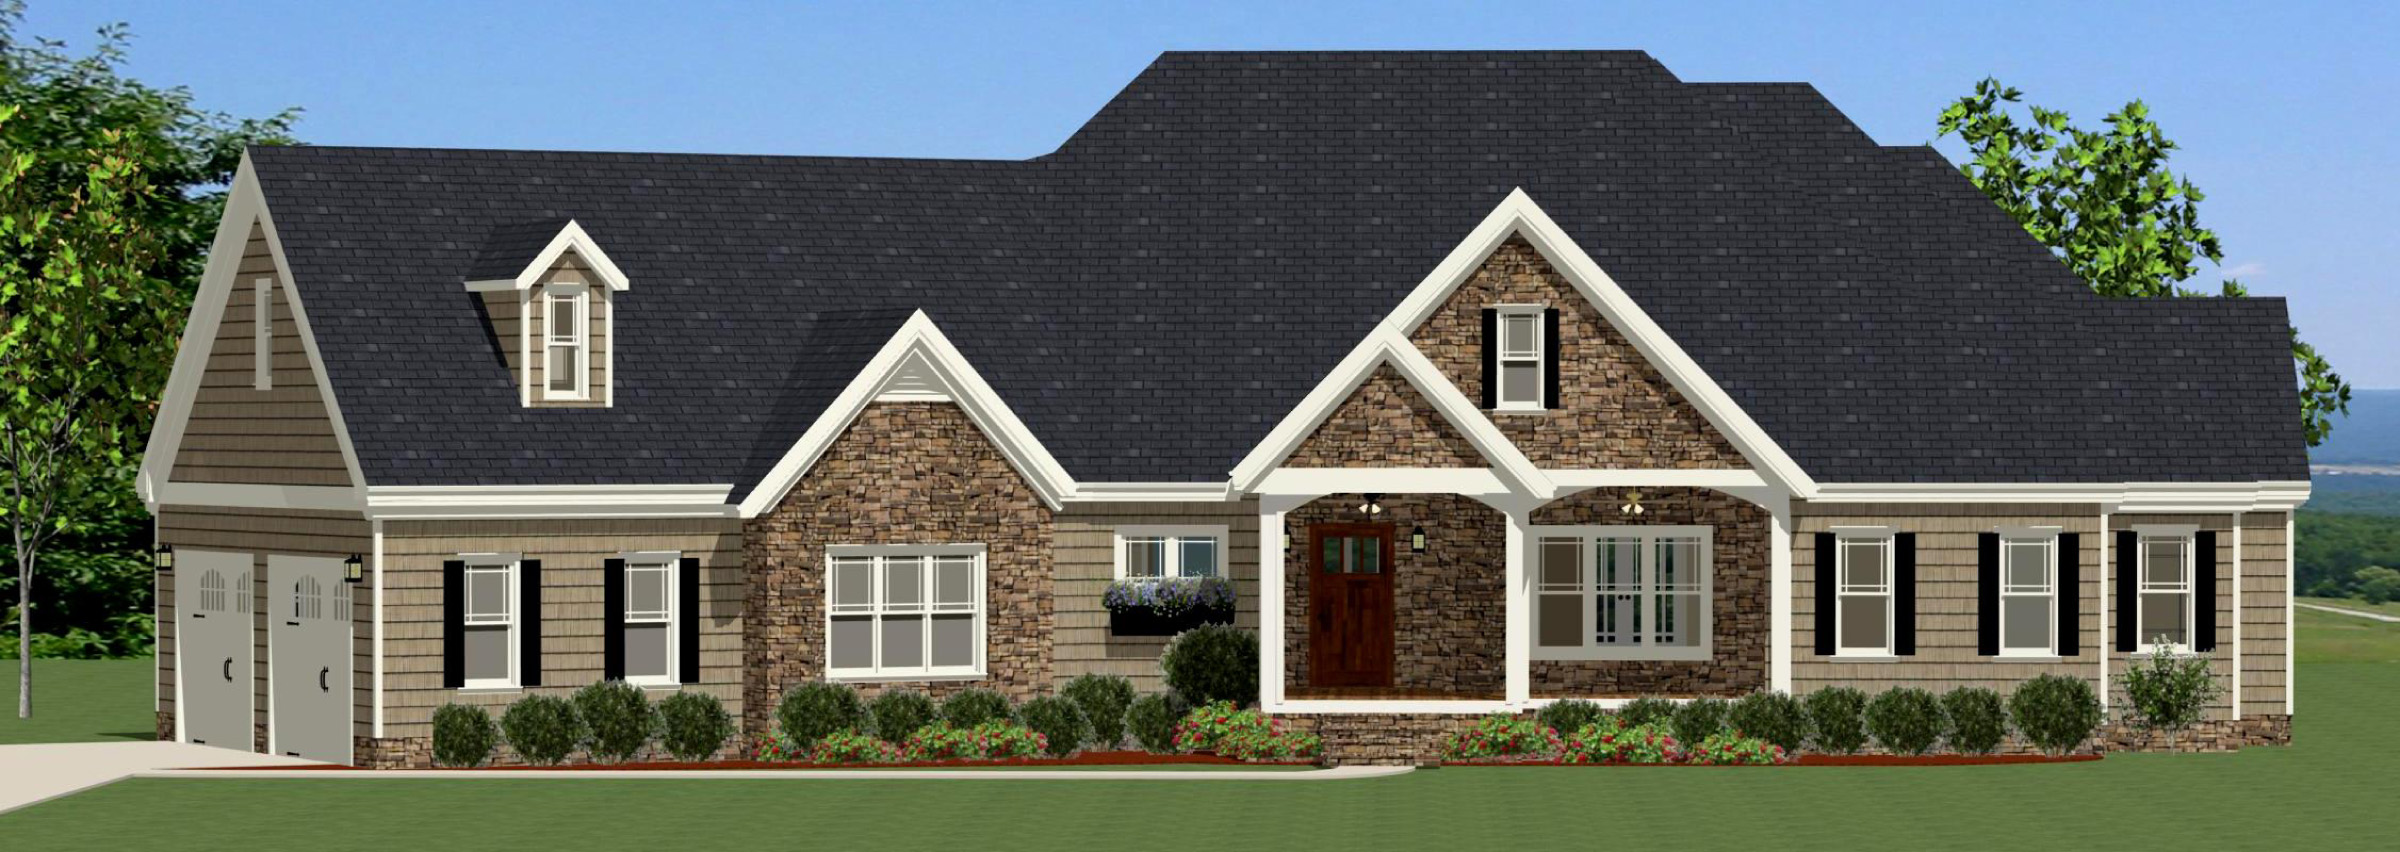 Traditional house plan with split bedrooms 46249la - Traditional home plans and designs ...